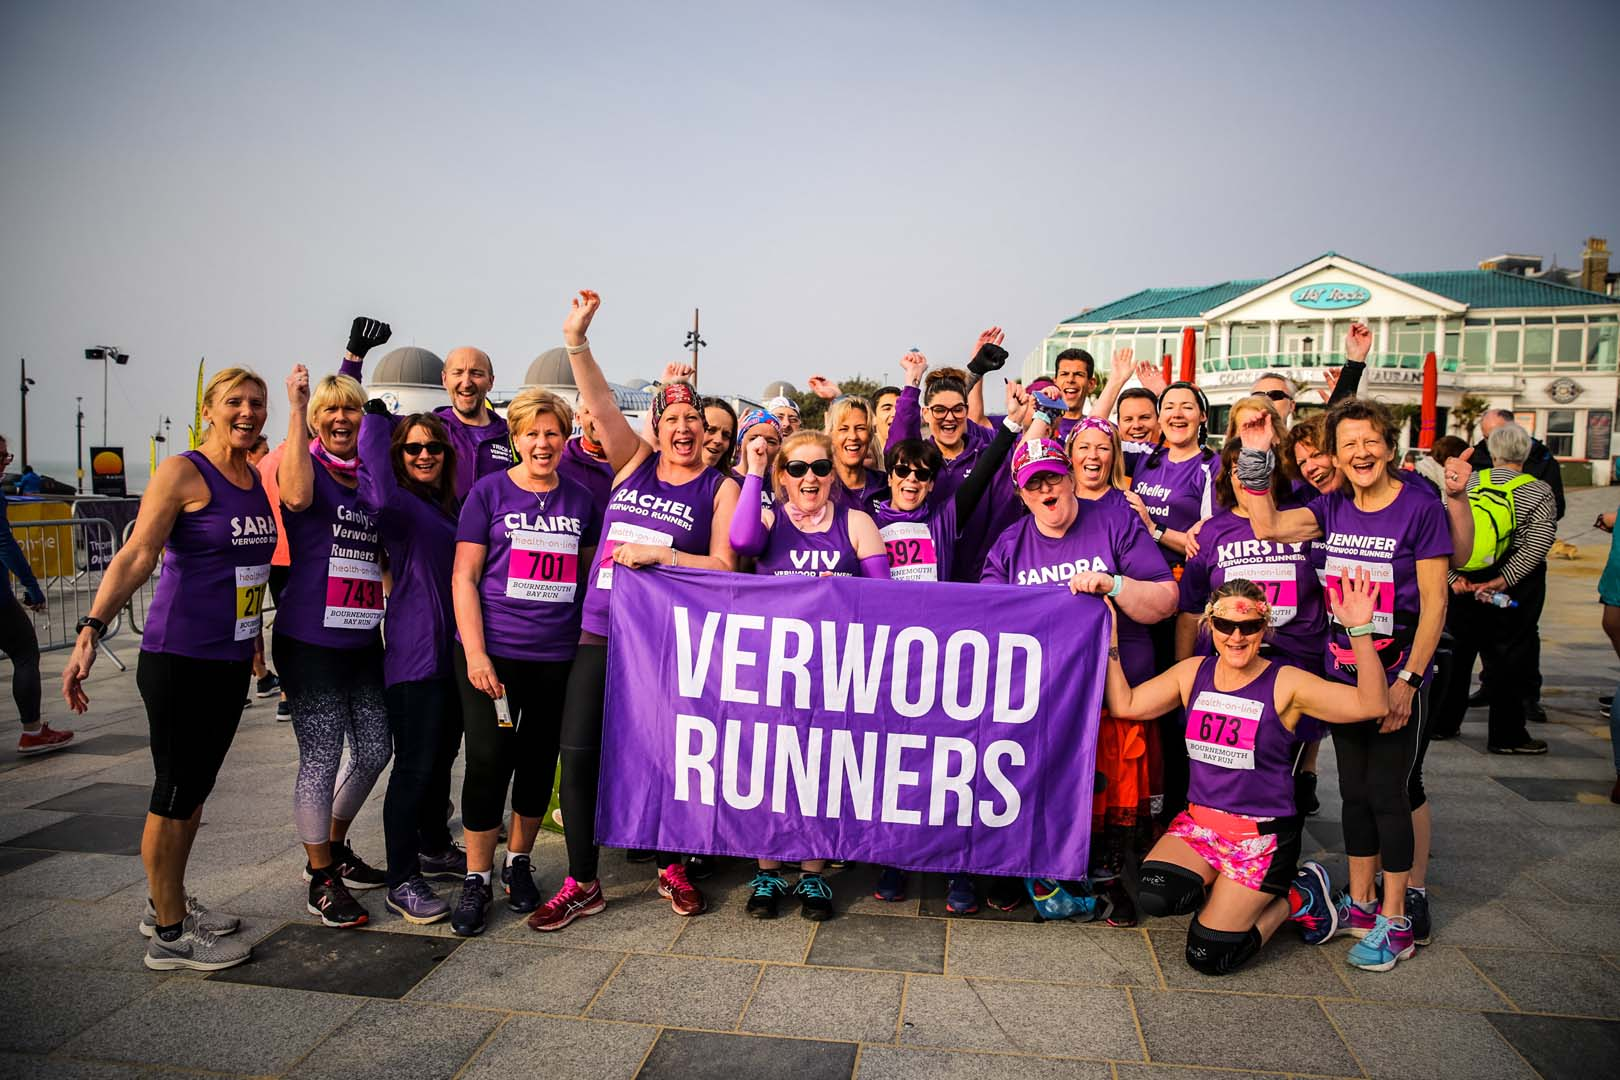 Verwood runners group photo in their purple gear with banner